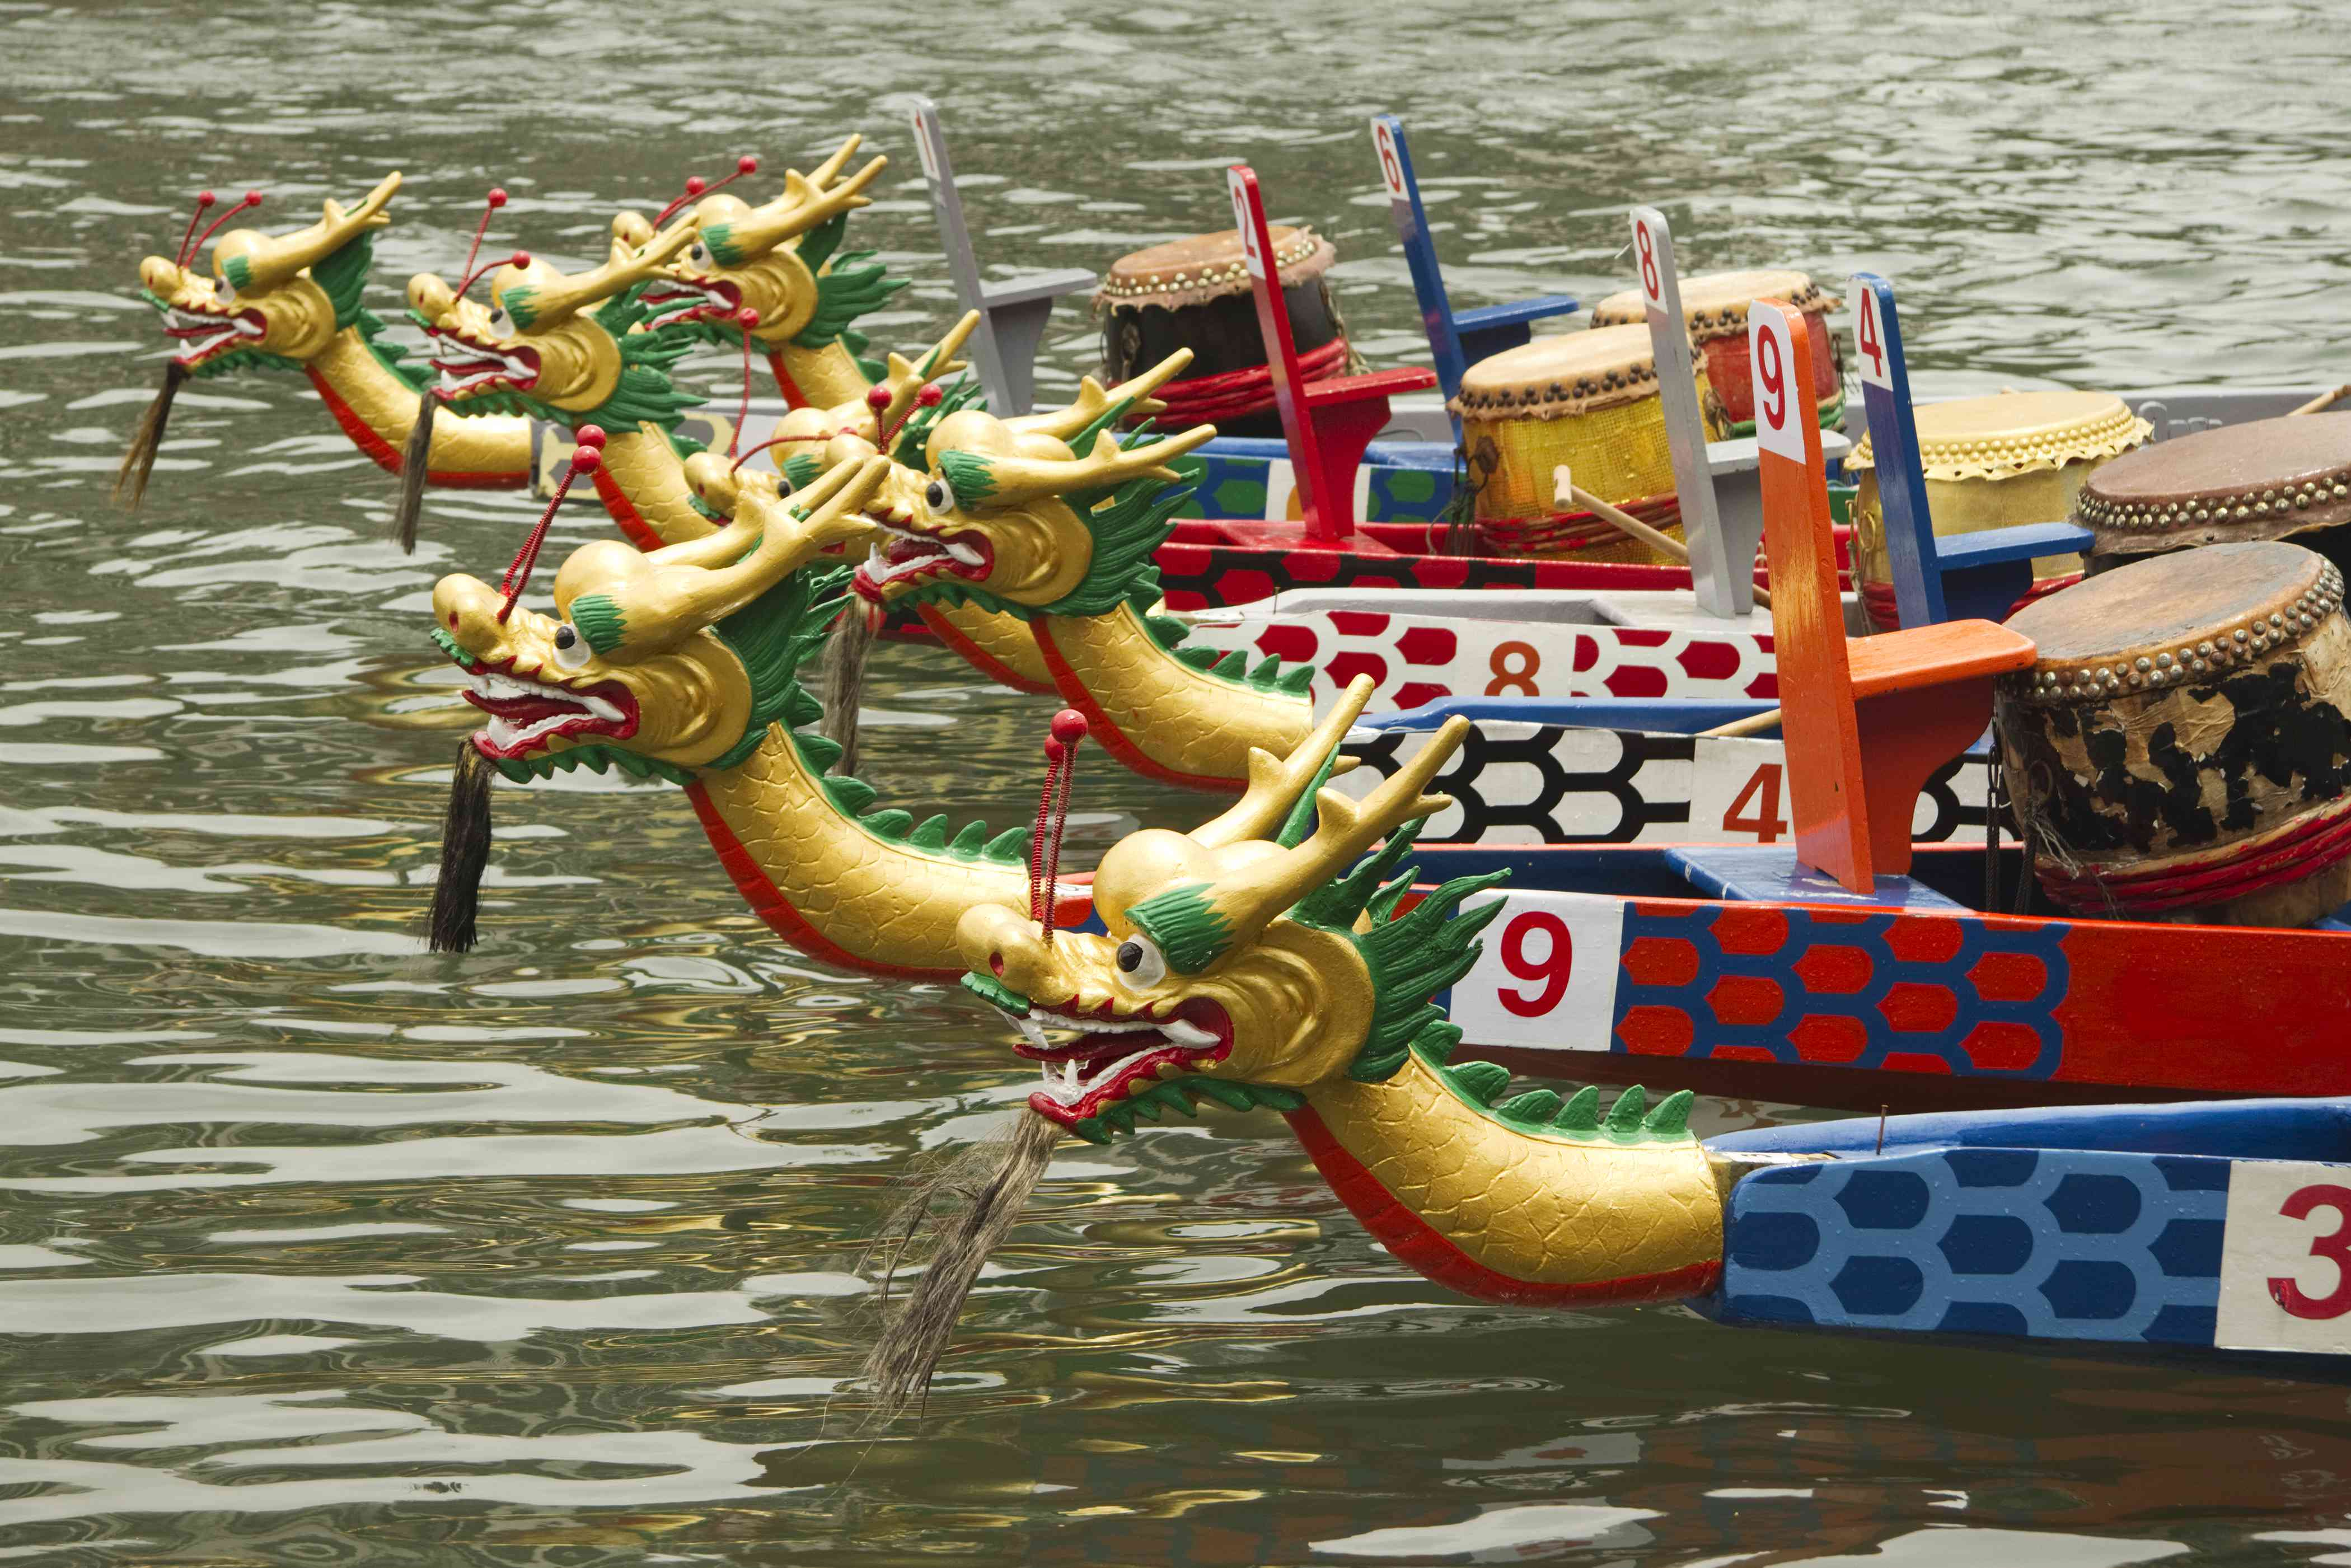 Six dragon boats with different numbers